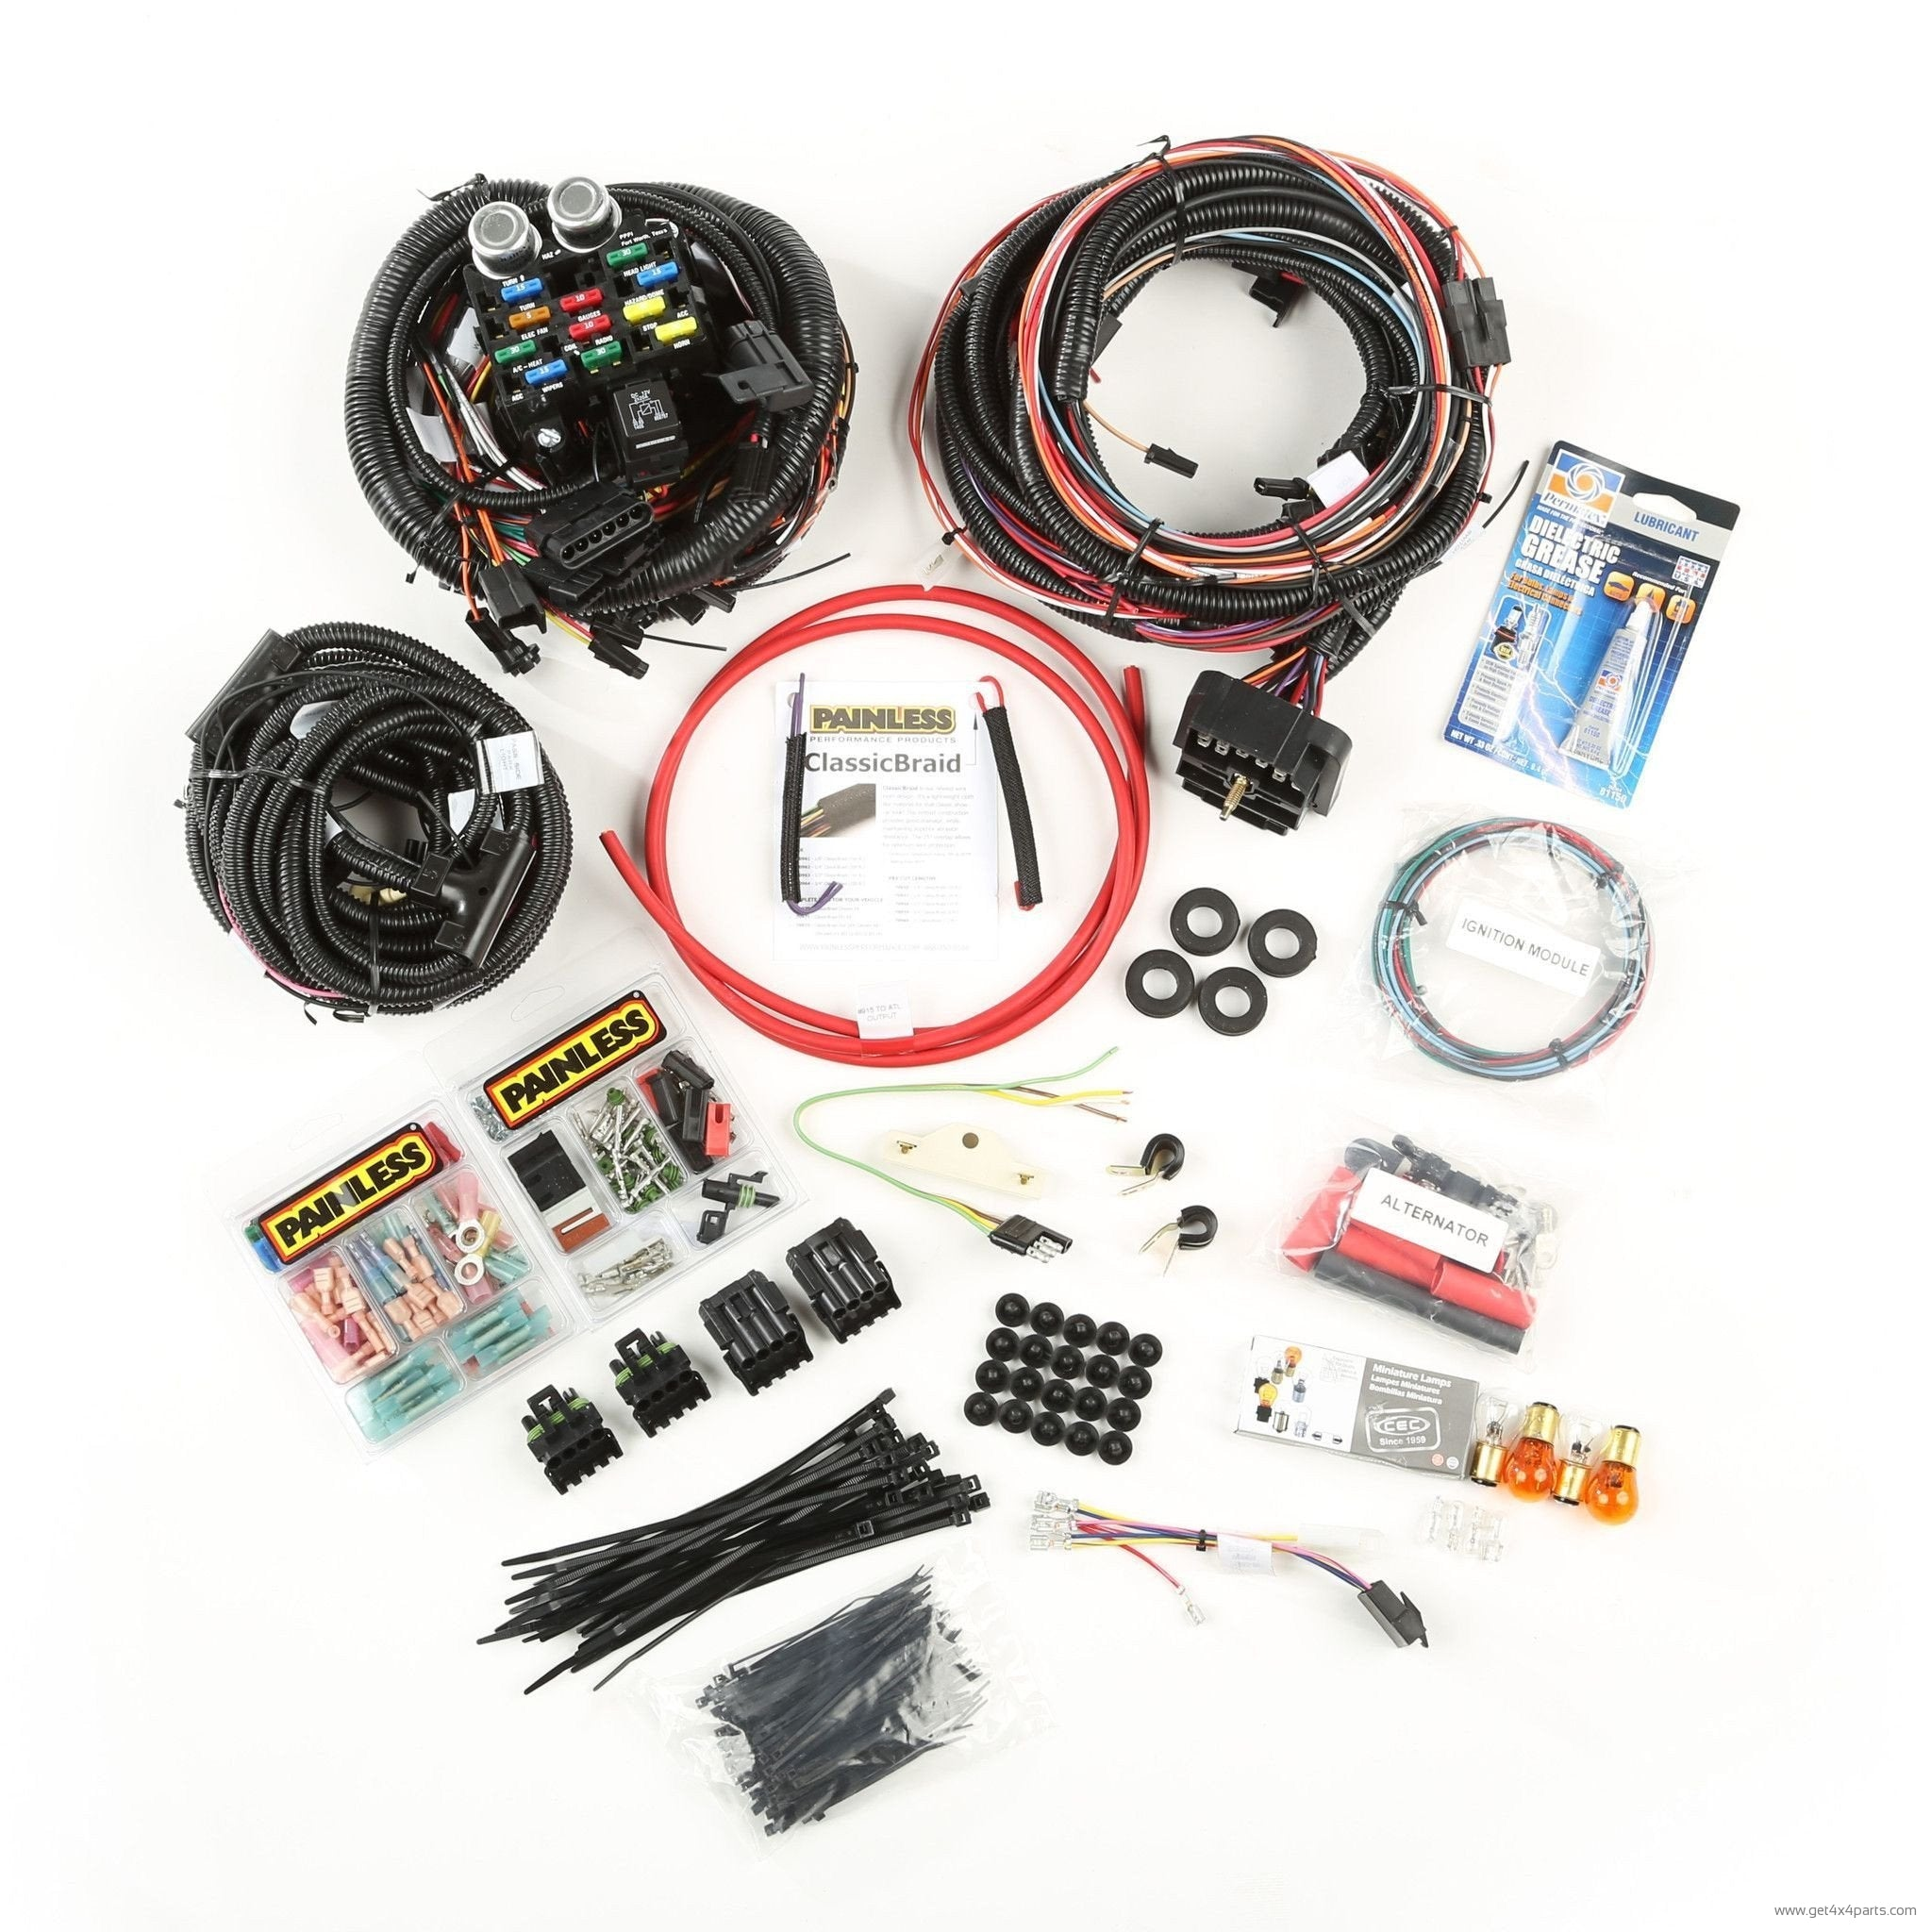 painless wiring harness 76 86 jeep cj models painless wiring harness 76 86 jeep cj?v\\\\\\\=1503517452 coleman 48203b876 mach internal wiring diagram coleman wiring  at crackthecode.co